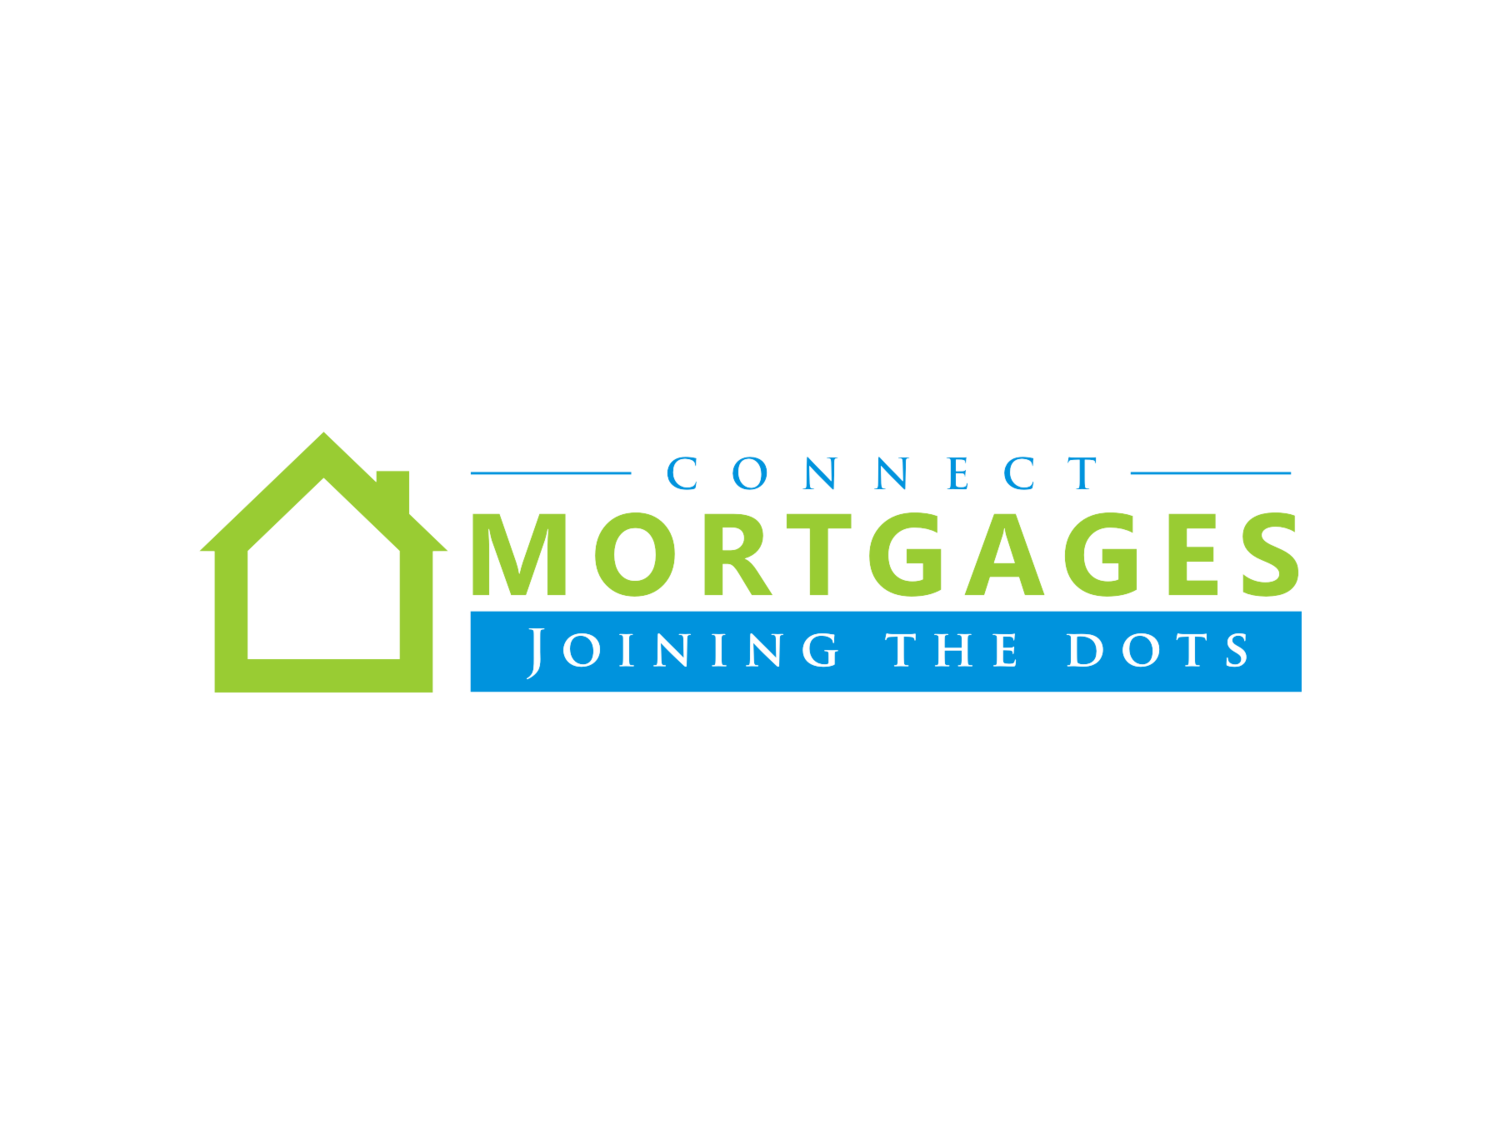 Connect Mortgages